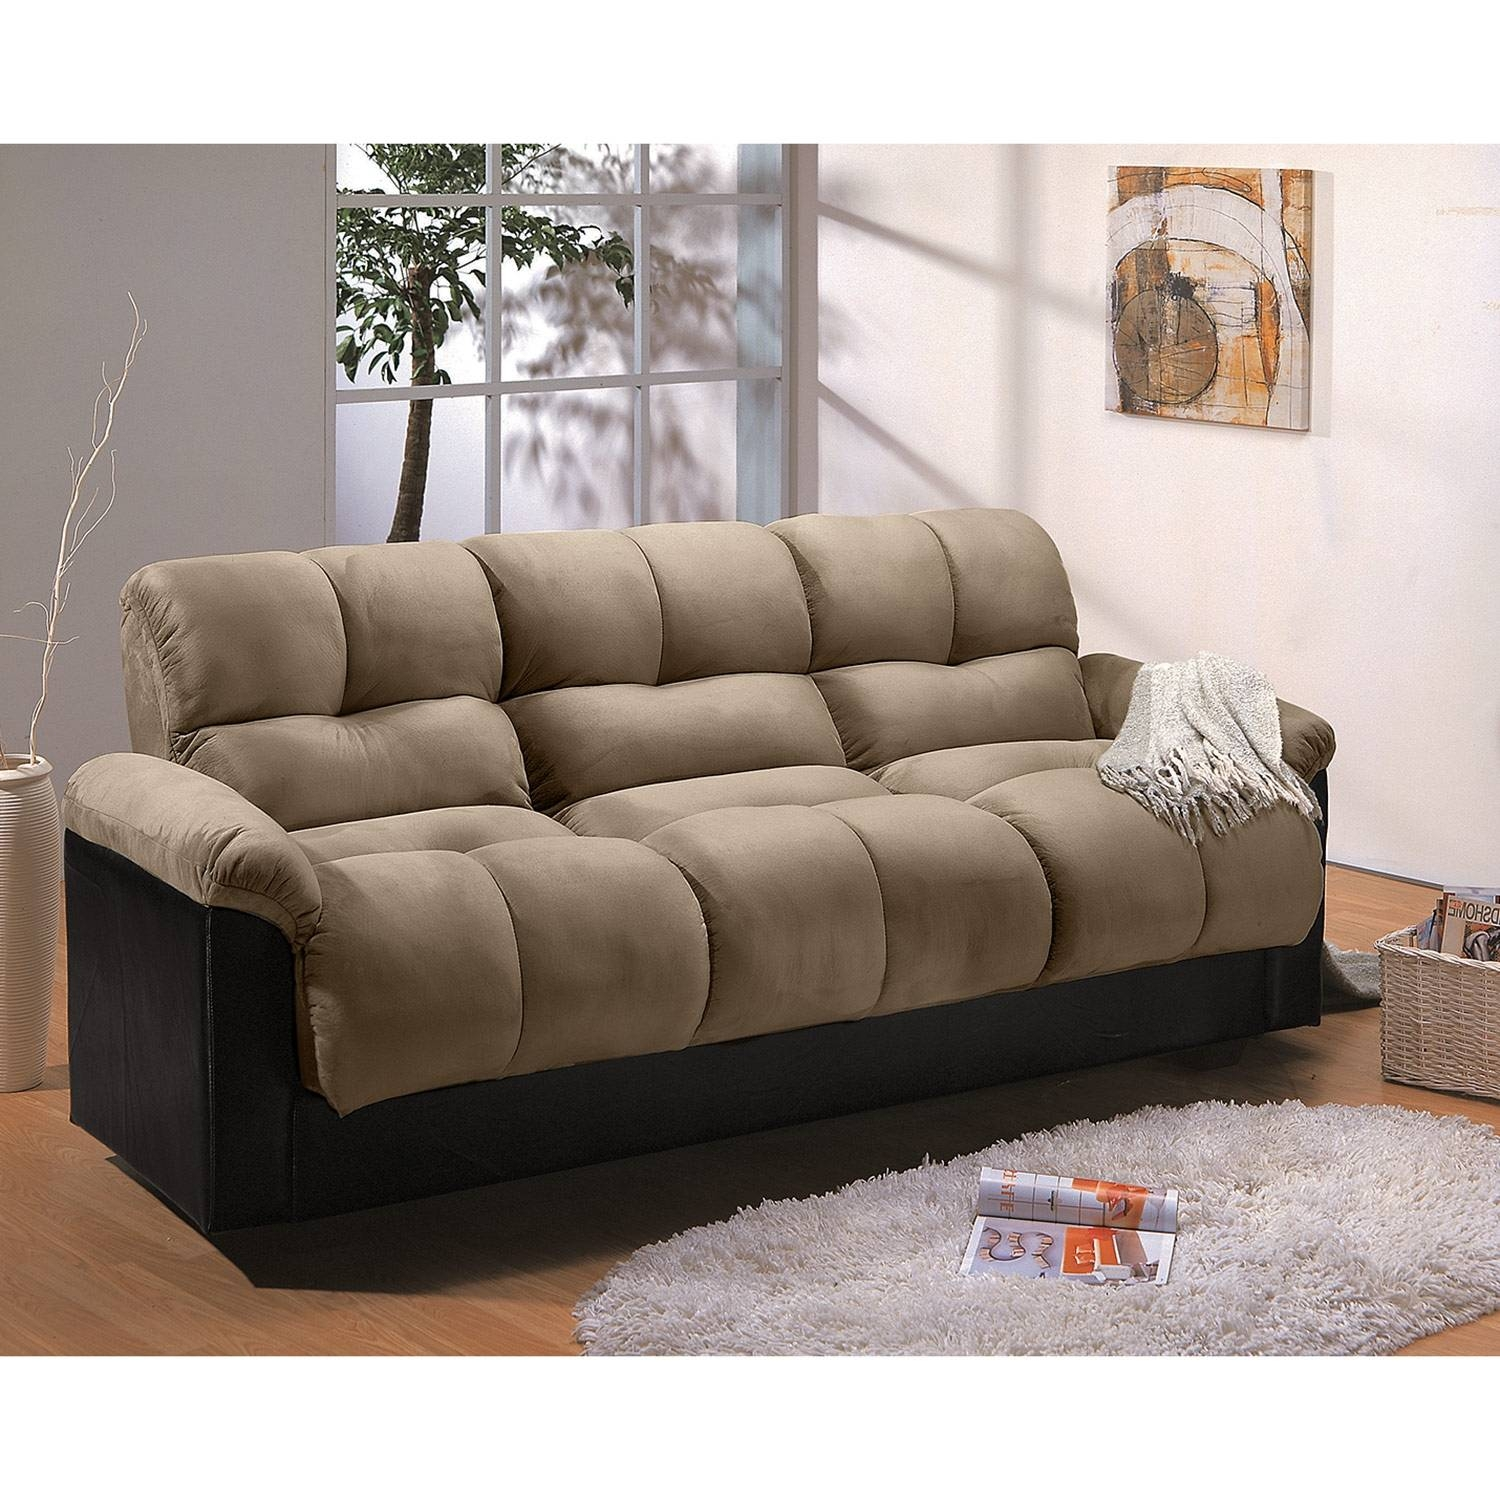 Sofa Futon Beds Ikea : Roof, Fence & Futons - Futon Beds Ikea intended for Leather Fouton Sofas (Image 14 of 15)